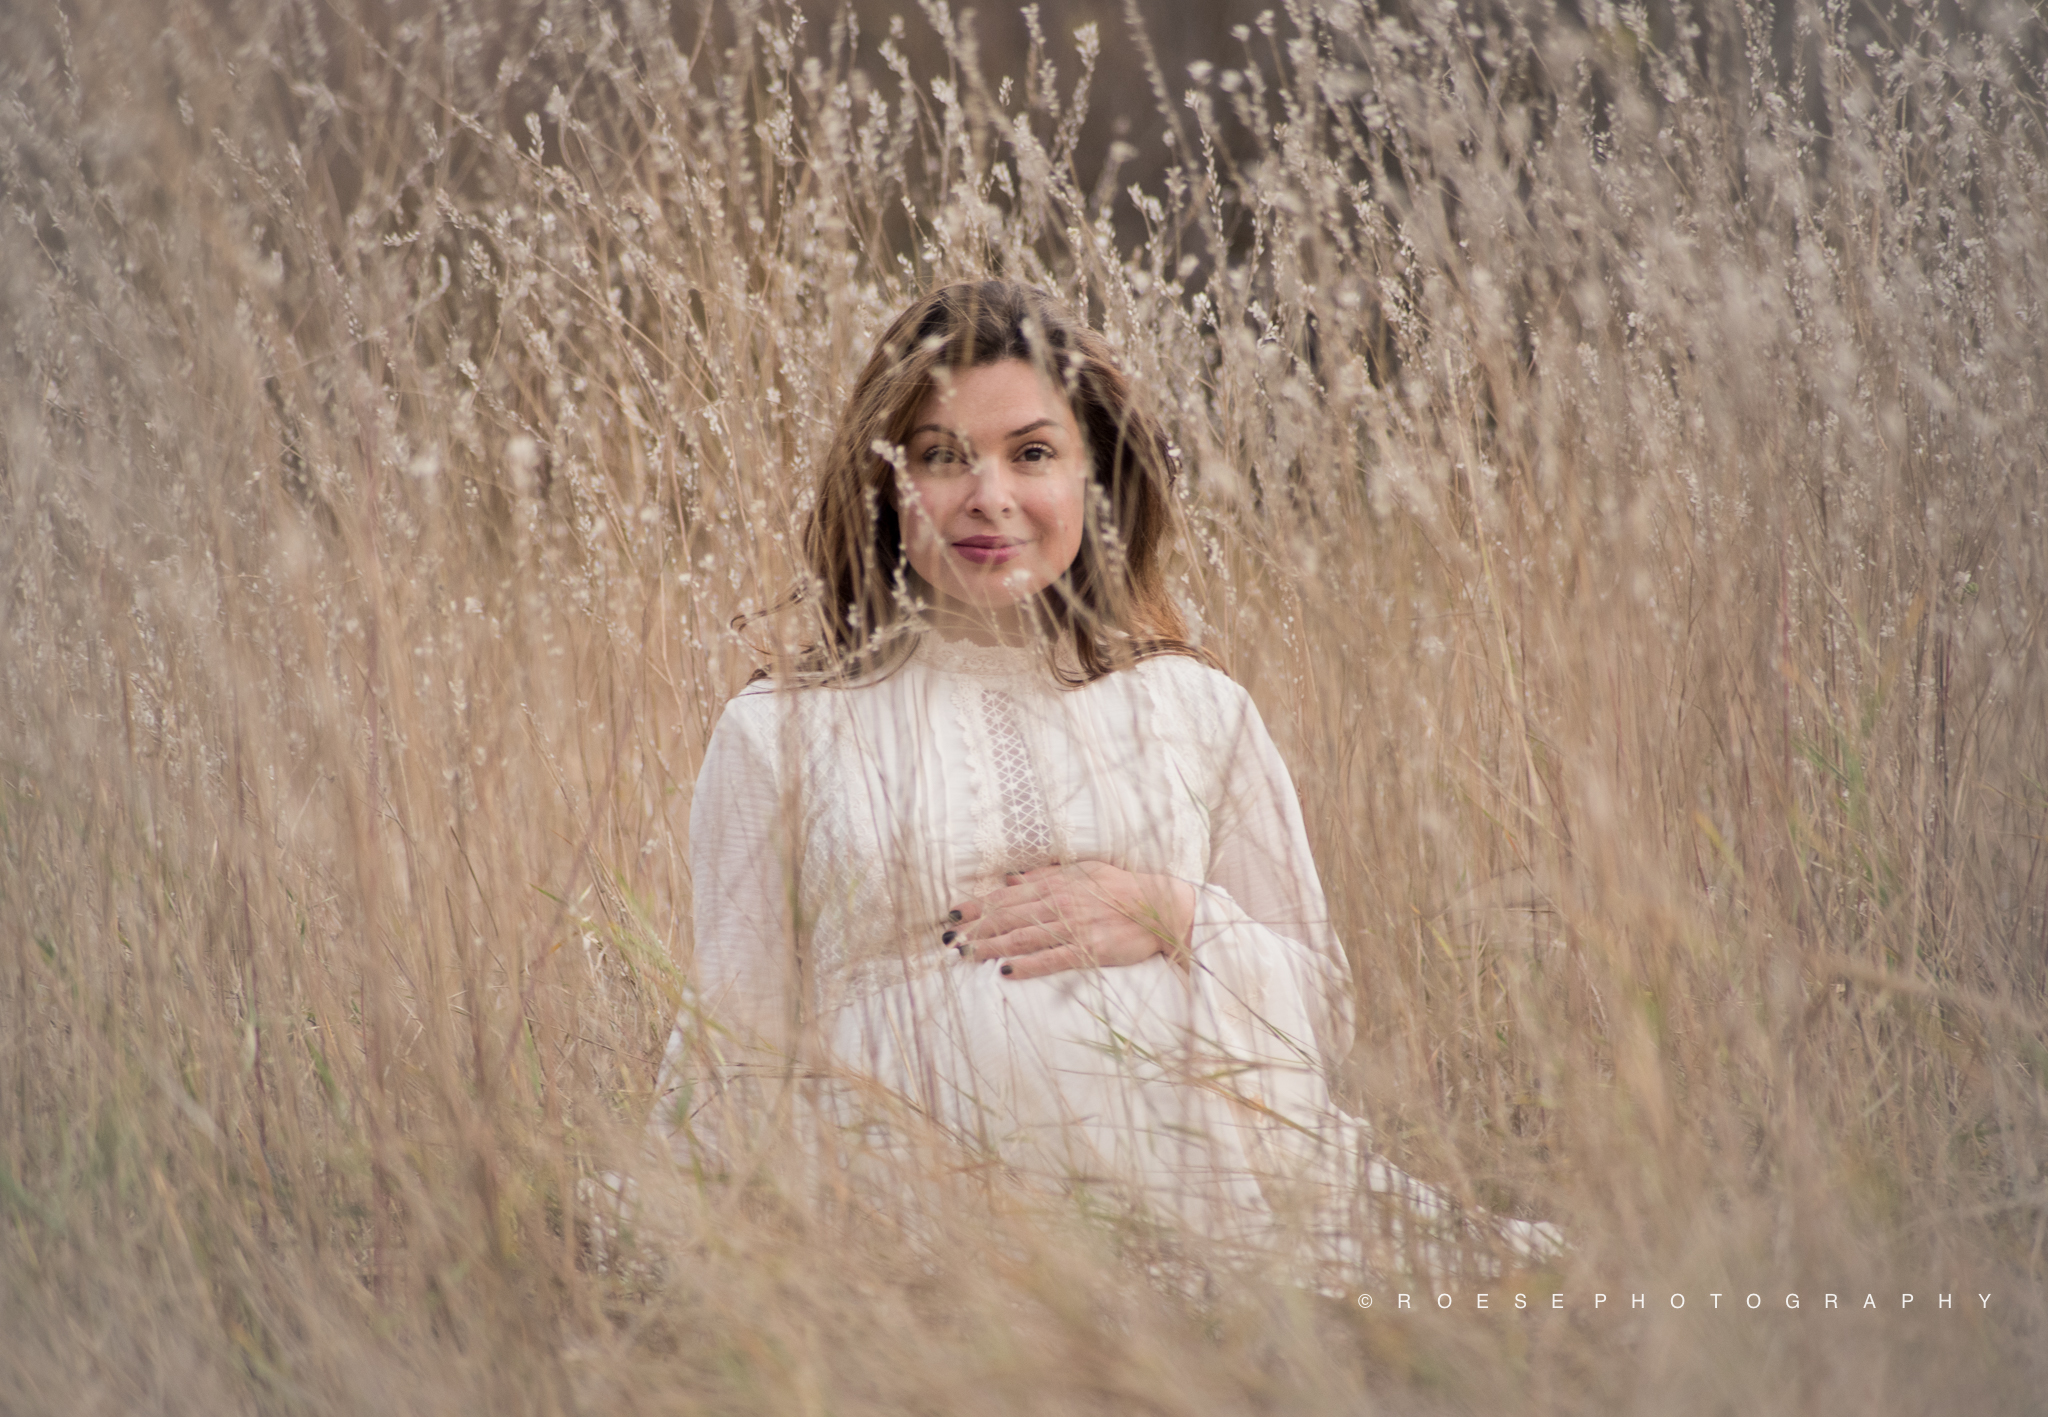 C.-Roese-Ramp-Roese-Photography_jess_colorado_maternity-28.jpg